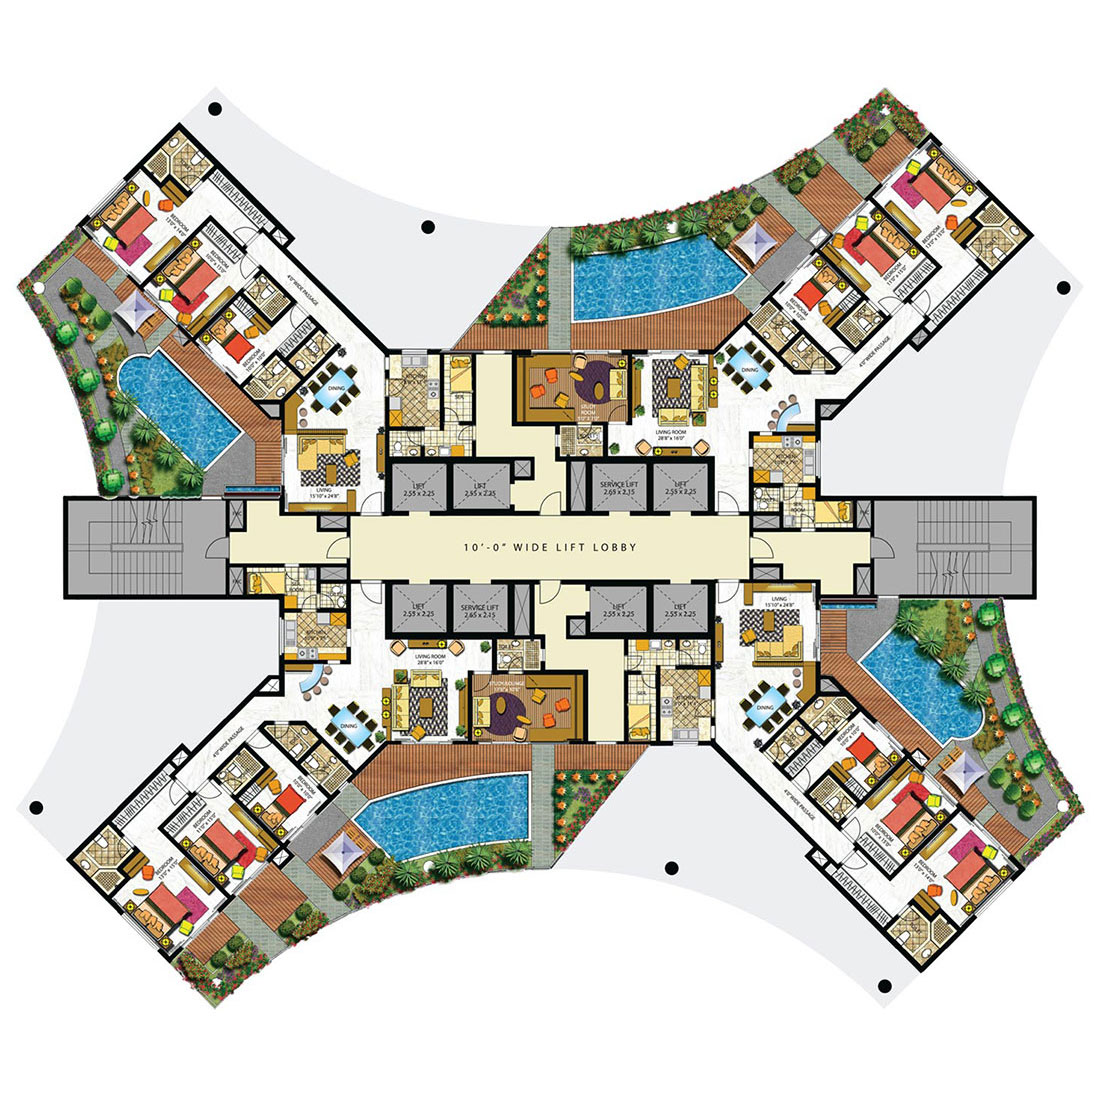 Duplex apartments mumbai buy home lower parel for Apartment hotel plans